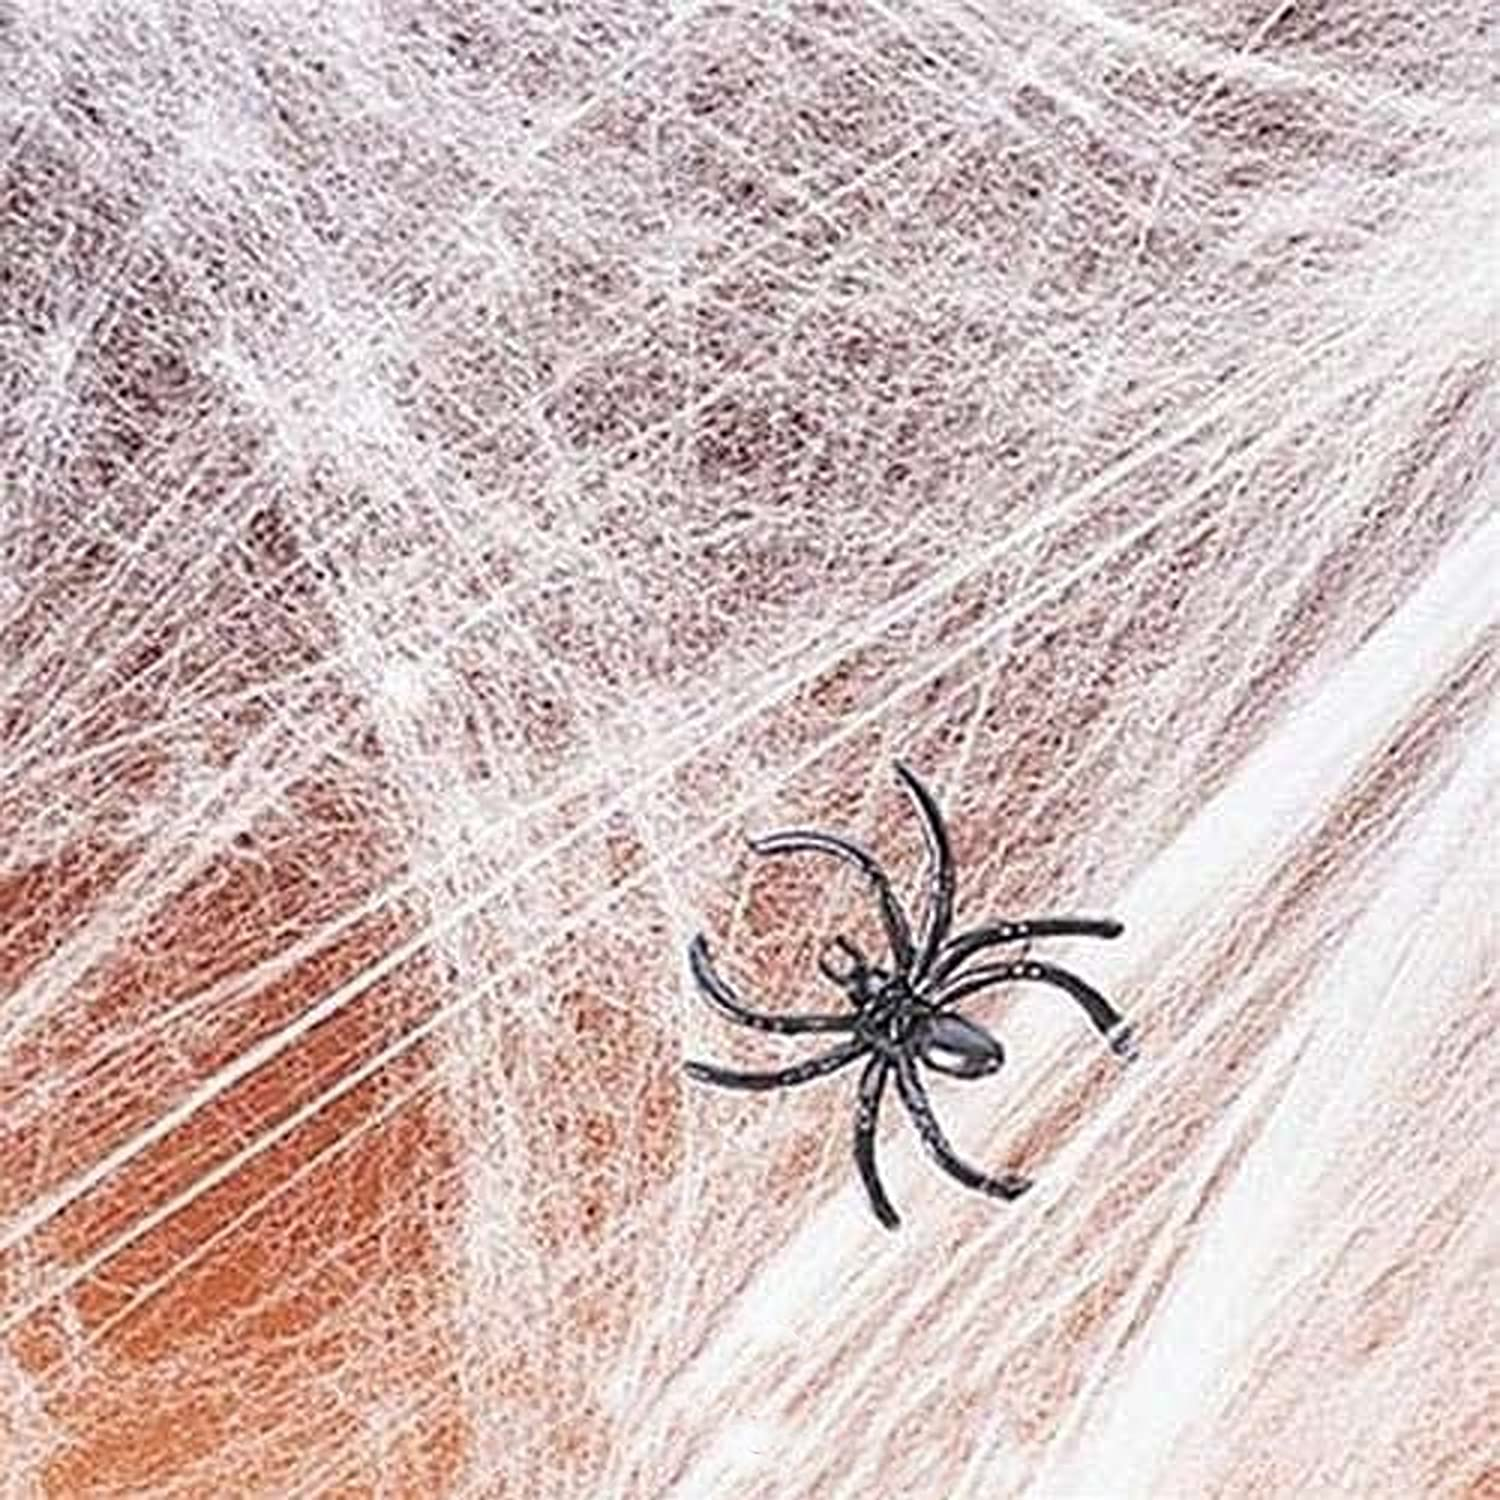 Amazon.com: Spider Web Streachable white with (2) Spiders Pkg/1 ...